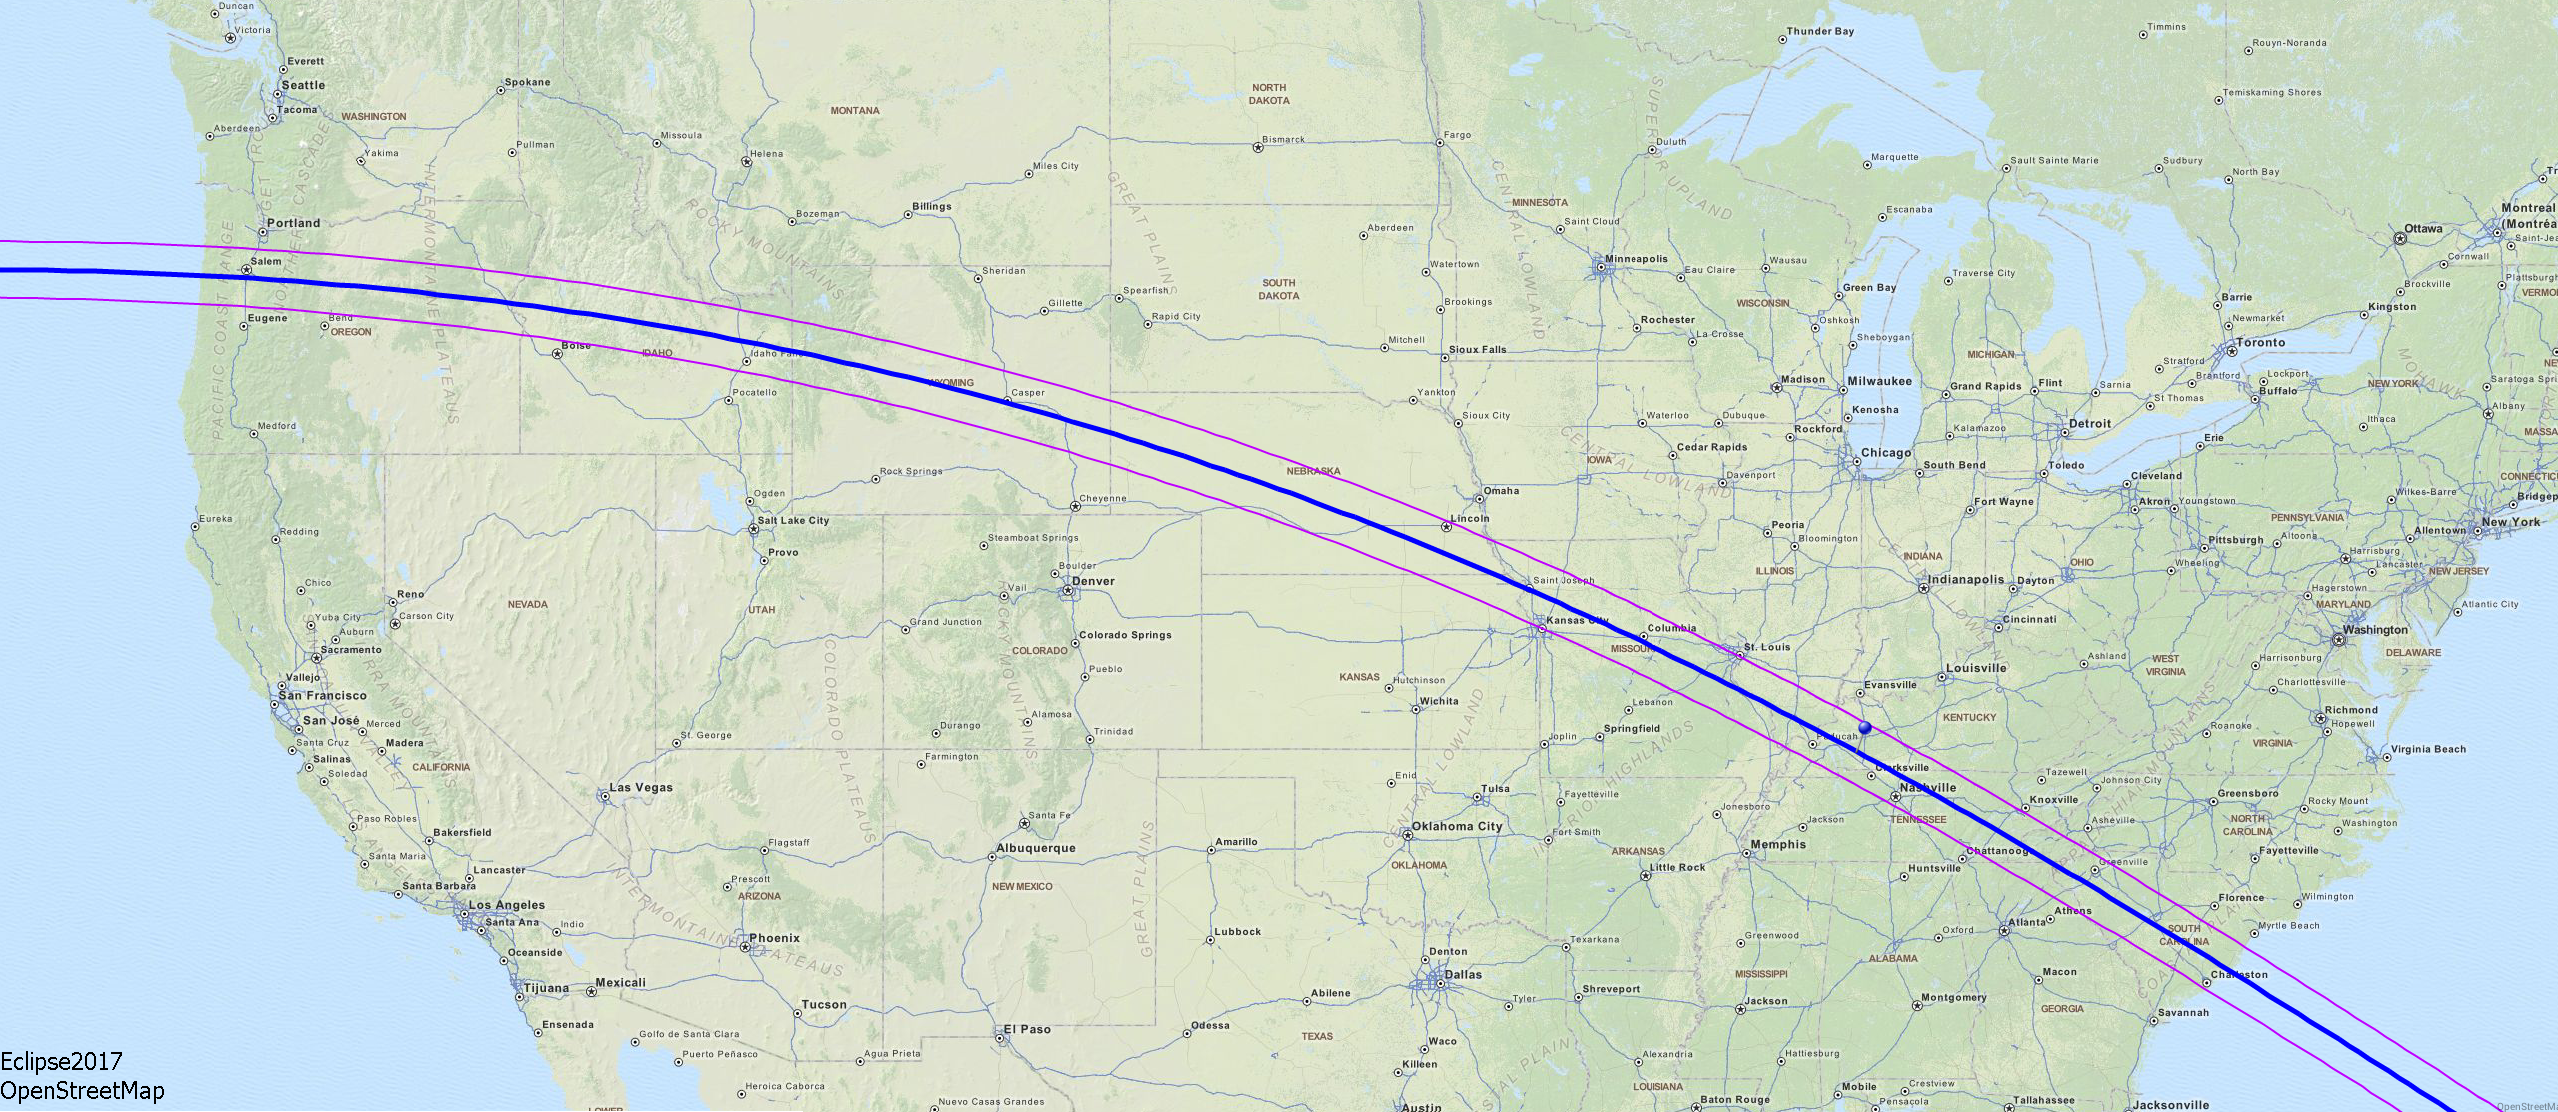 Map_of_the_solar_eclipse_2017_USA_OSM_Zoom1.png